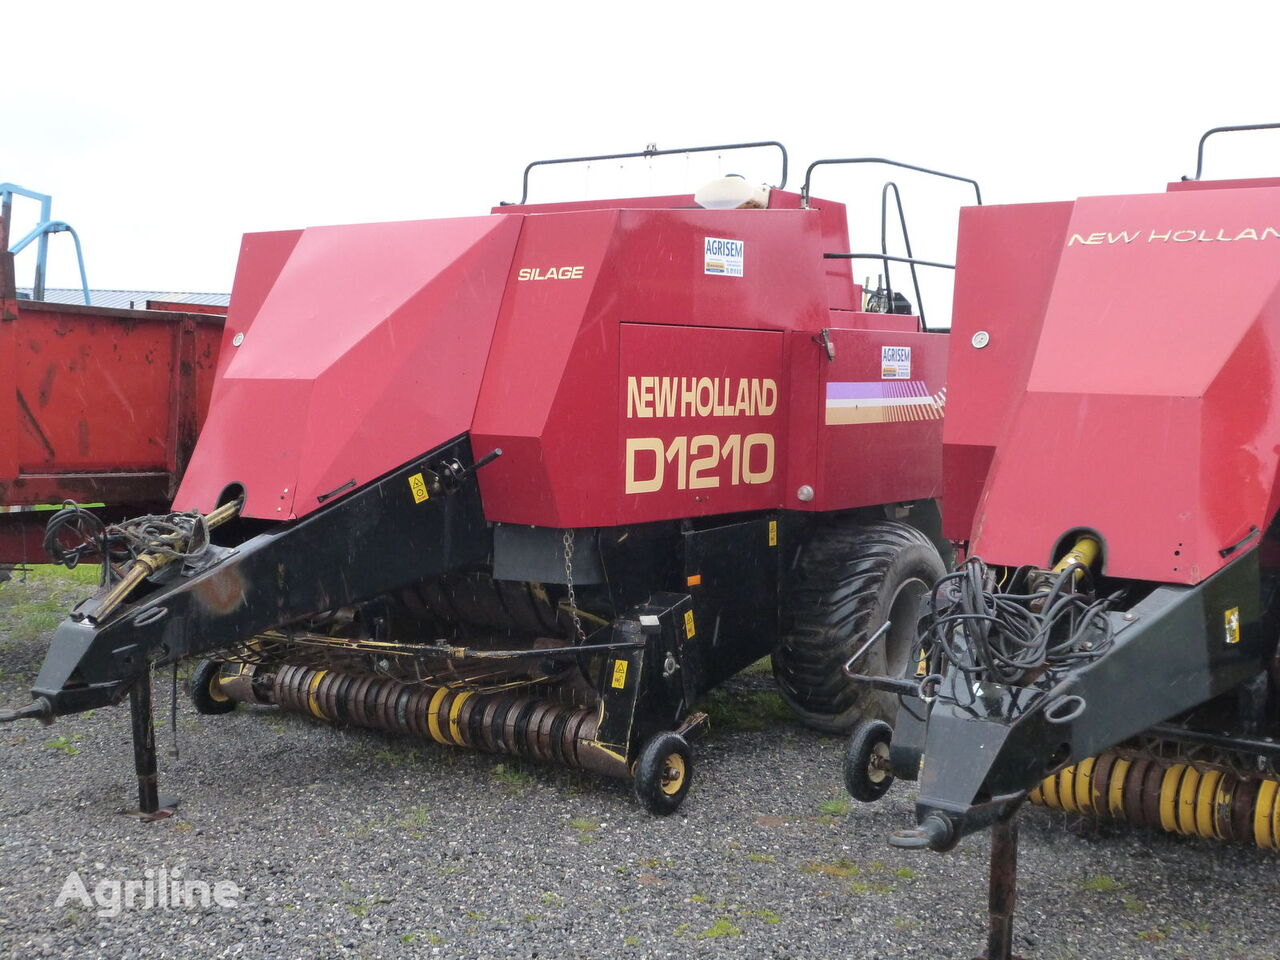 NEW HOLLAND 1210S square baler